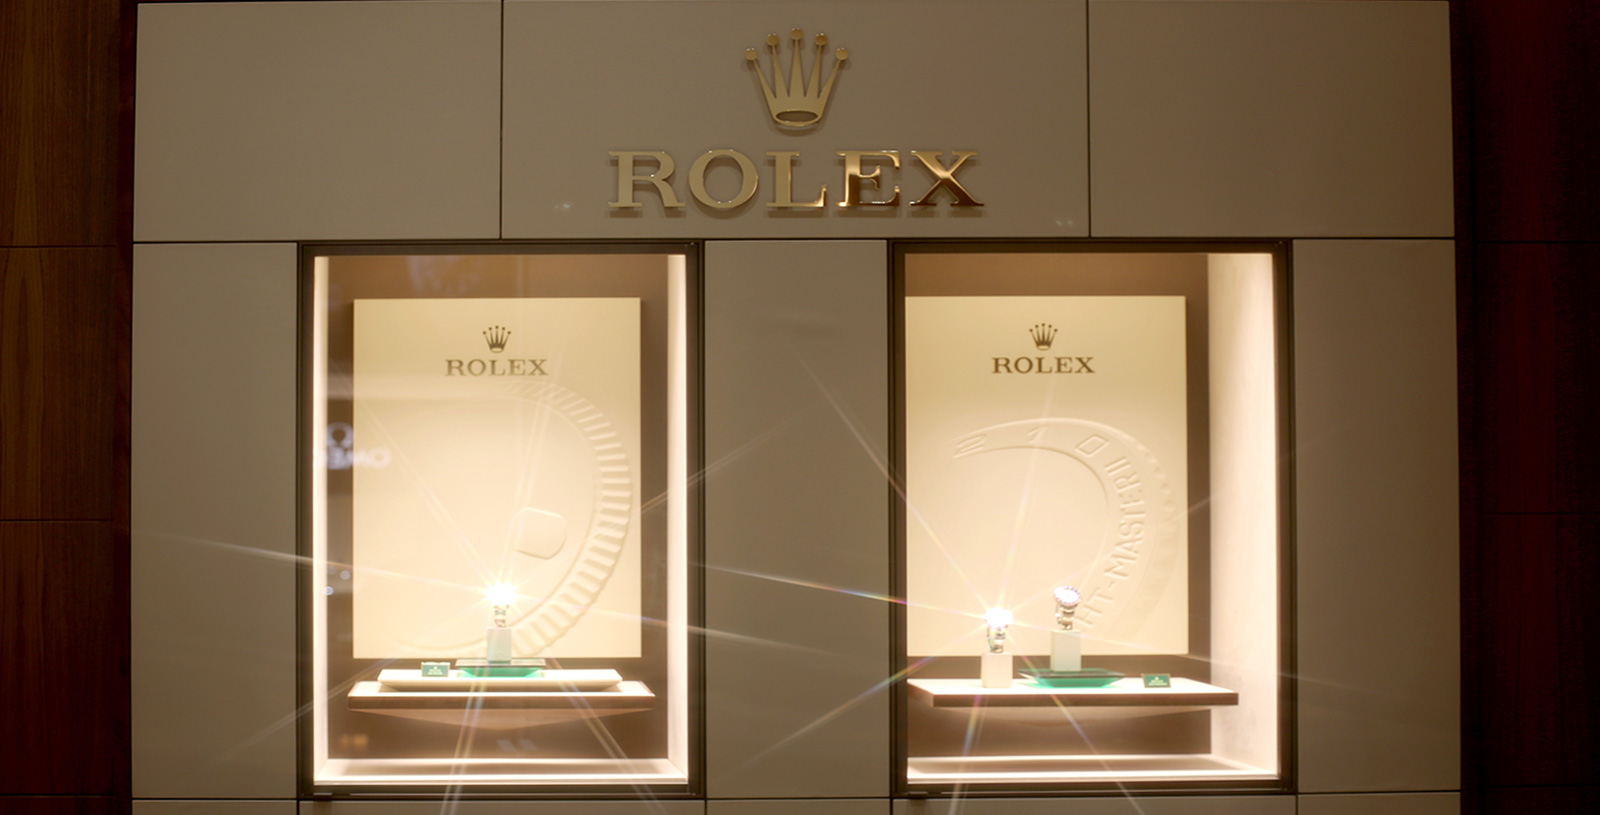 NEW ROLEX SHOWROOM – OPEN